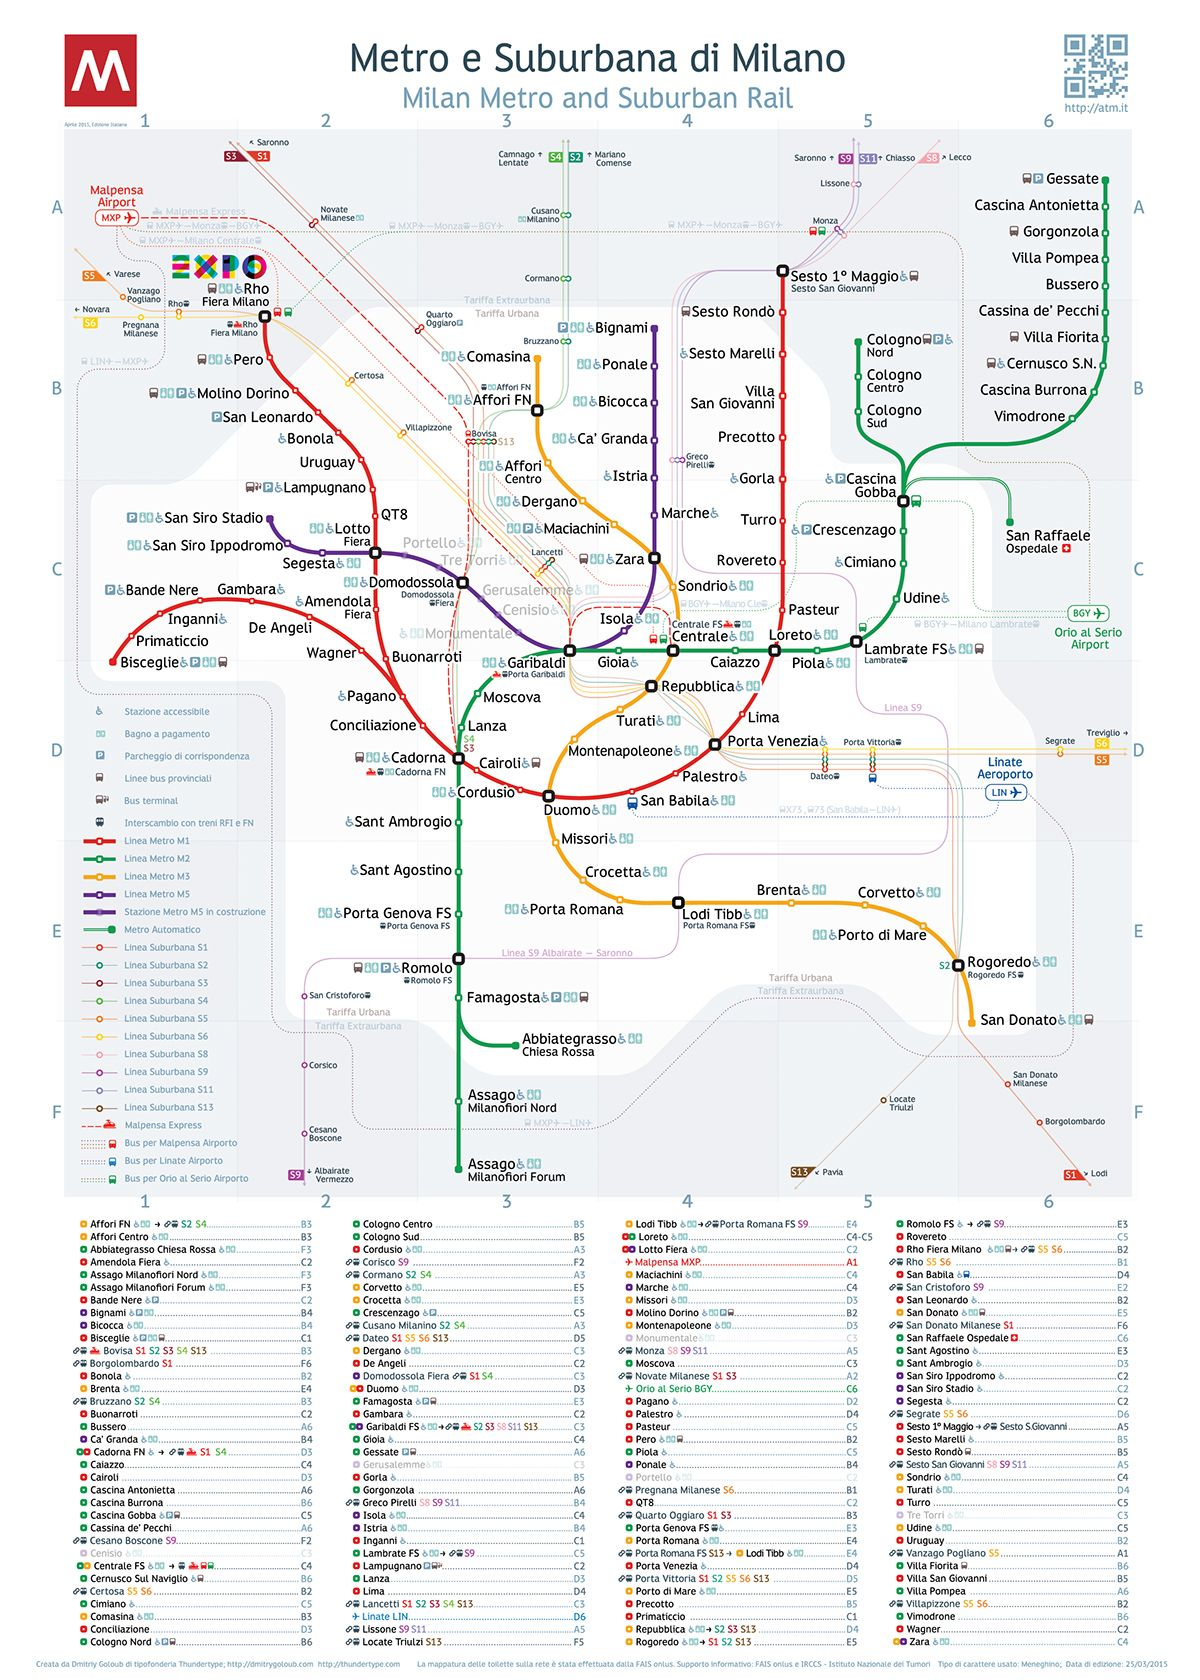 Milan Metro Map on Behance | Oh, the places I will go... in 2019